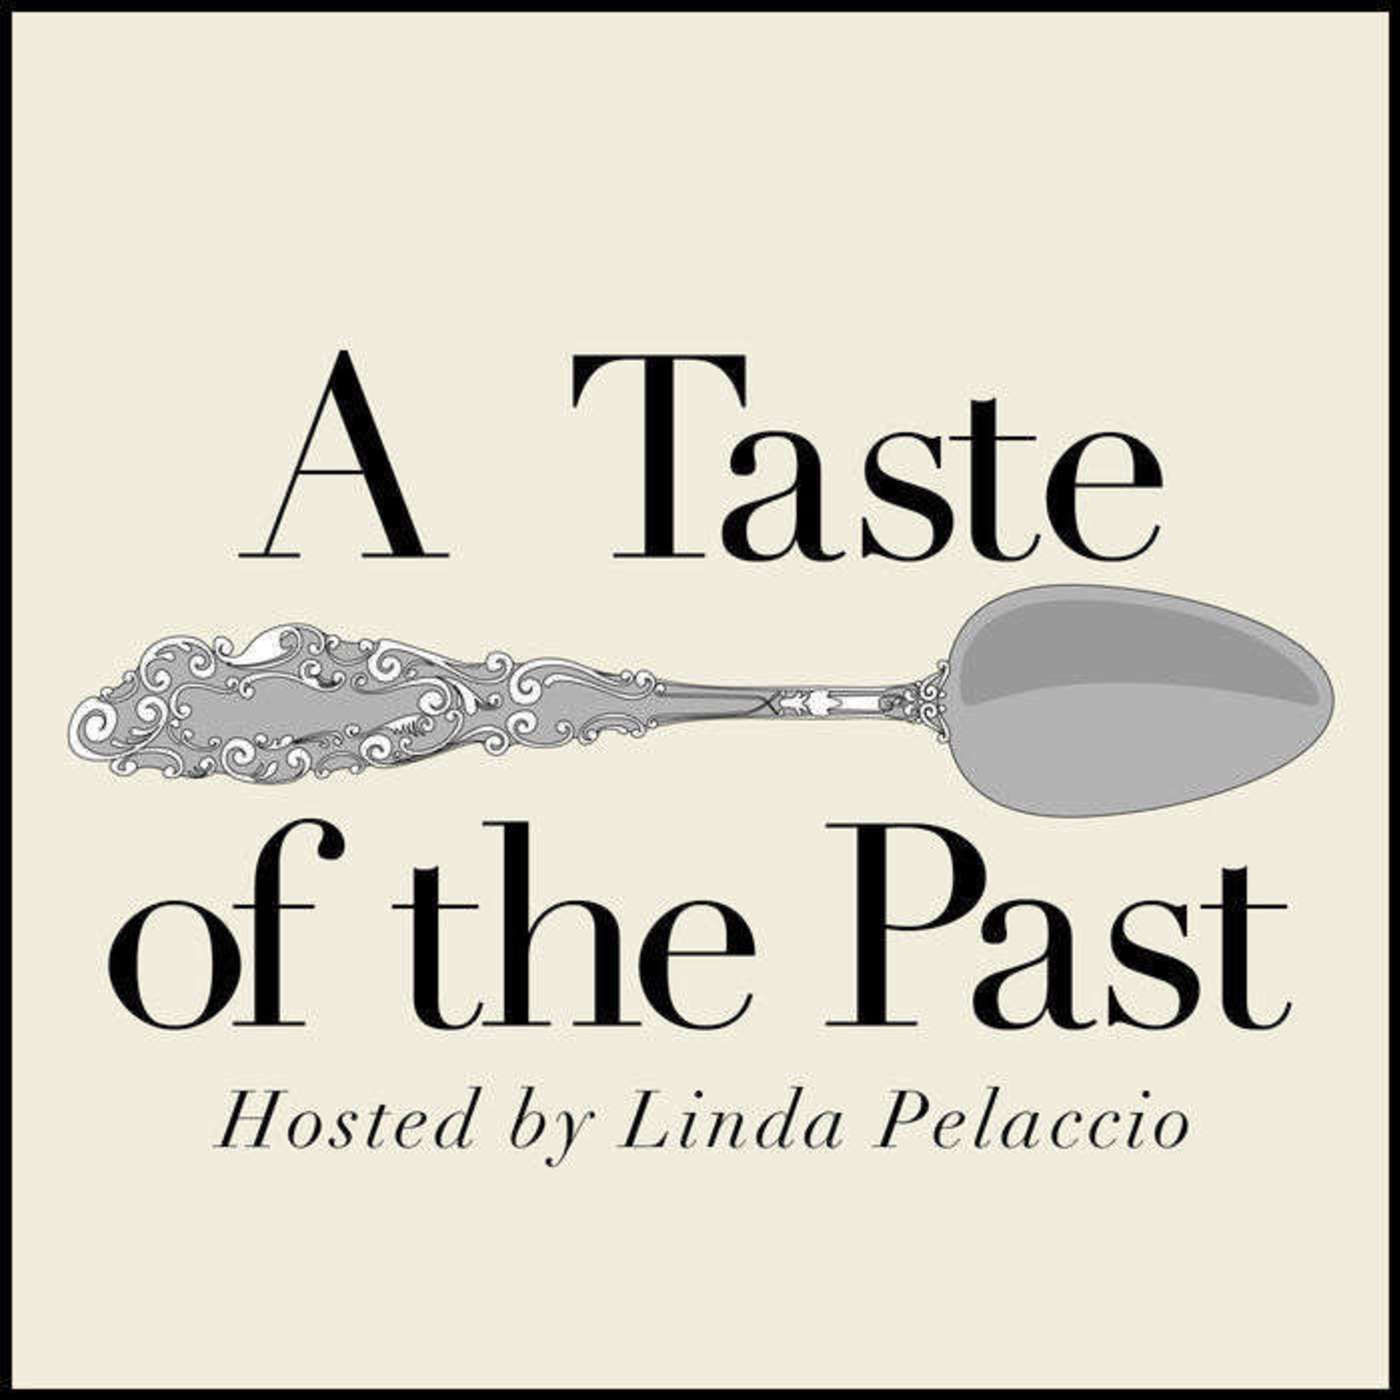 Episode 43: Origins of Malaysian Flavors